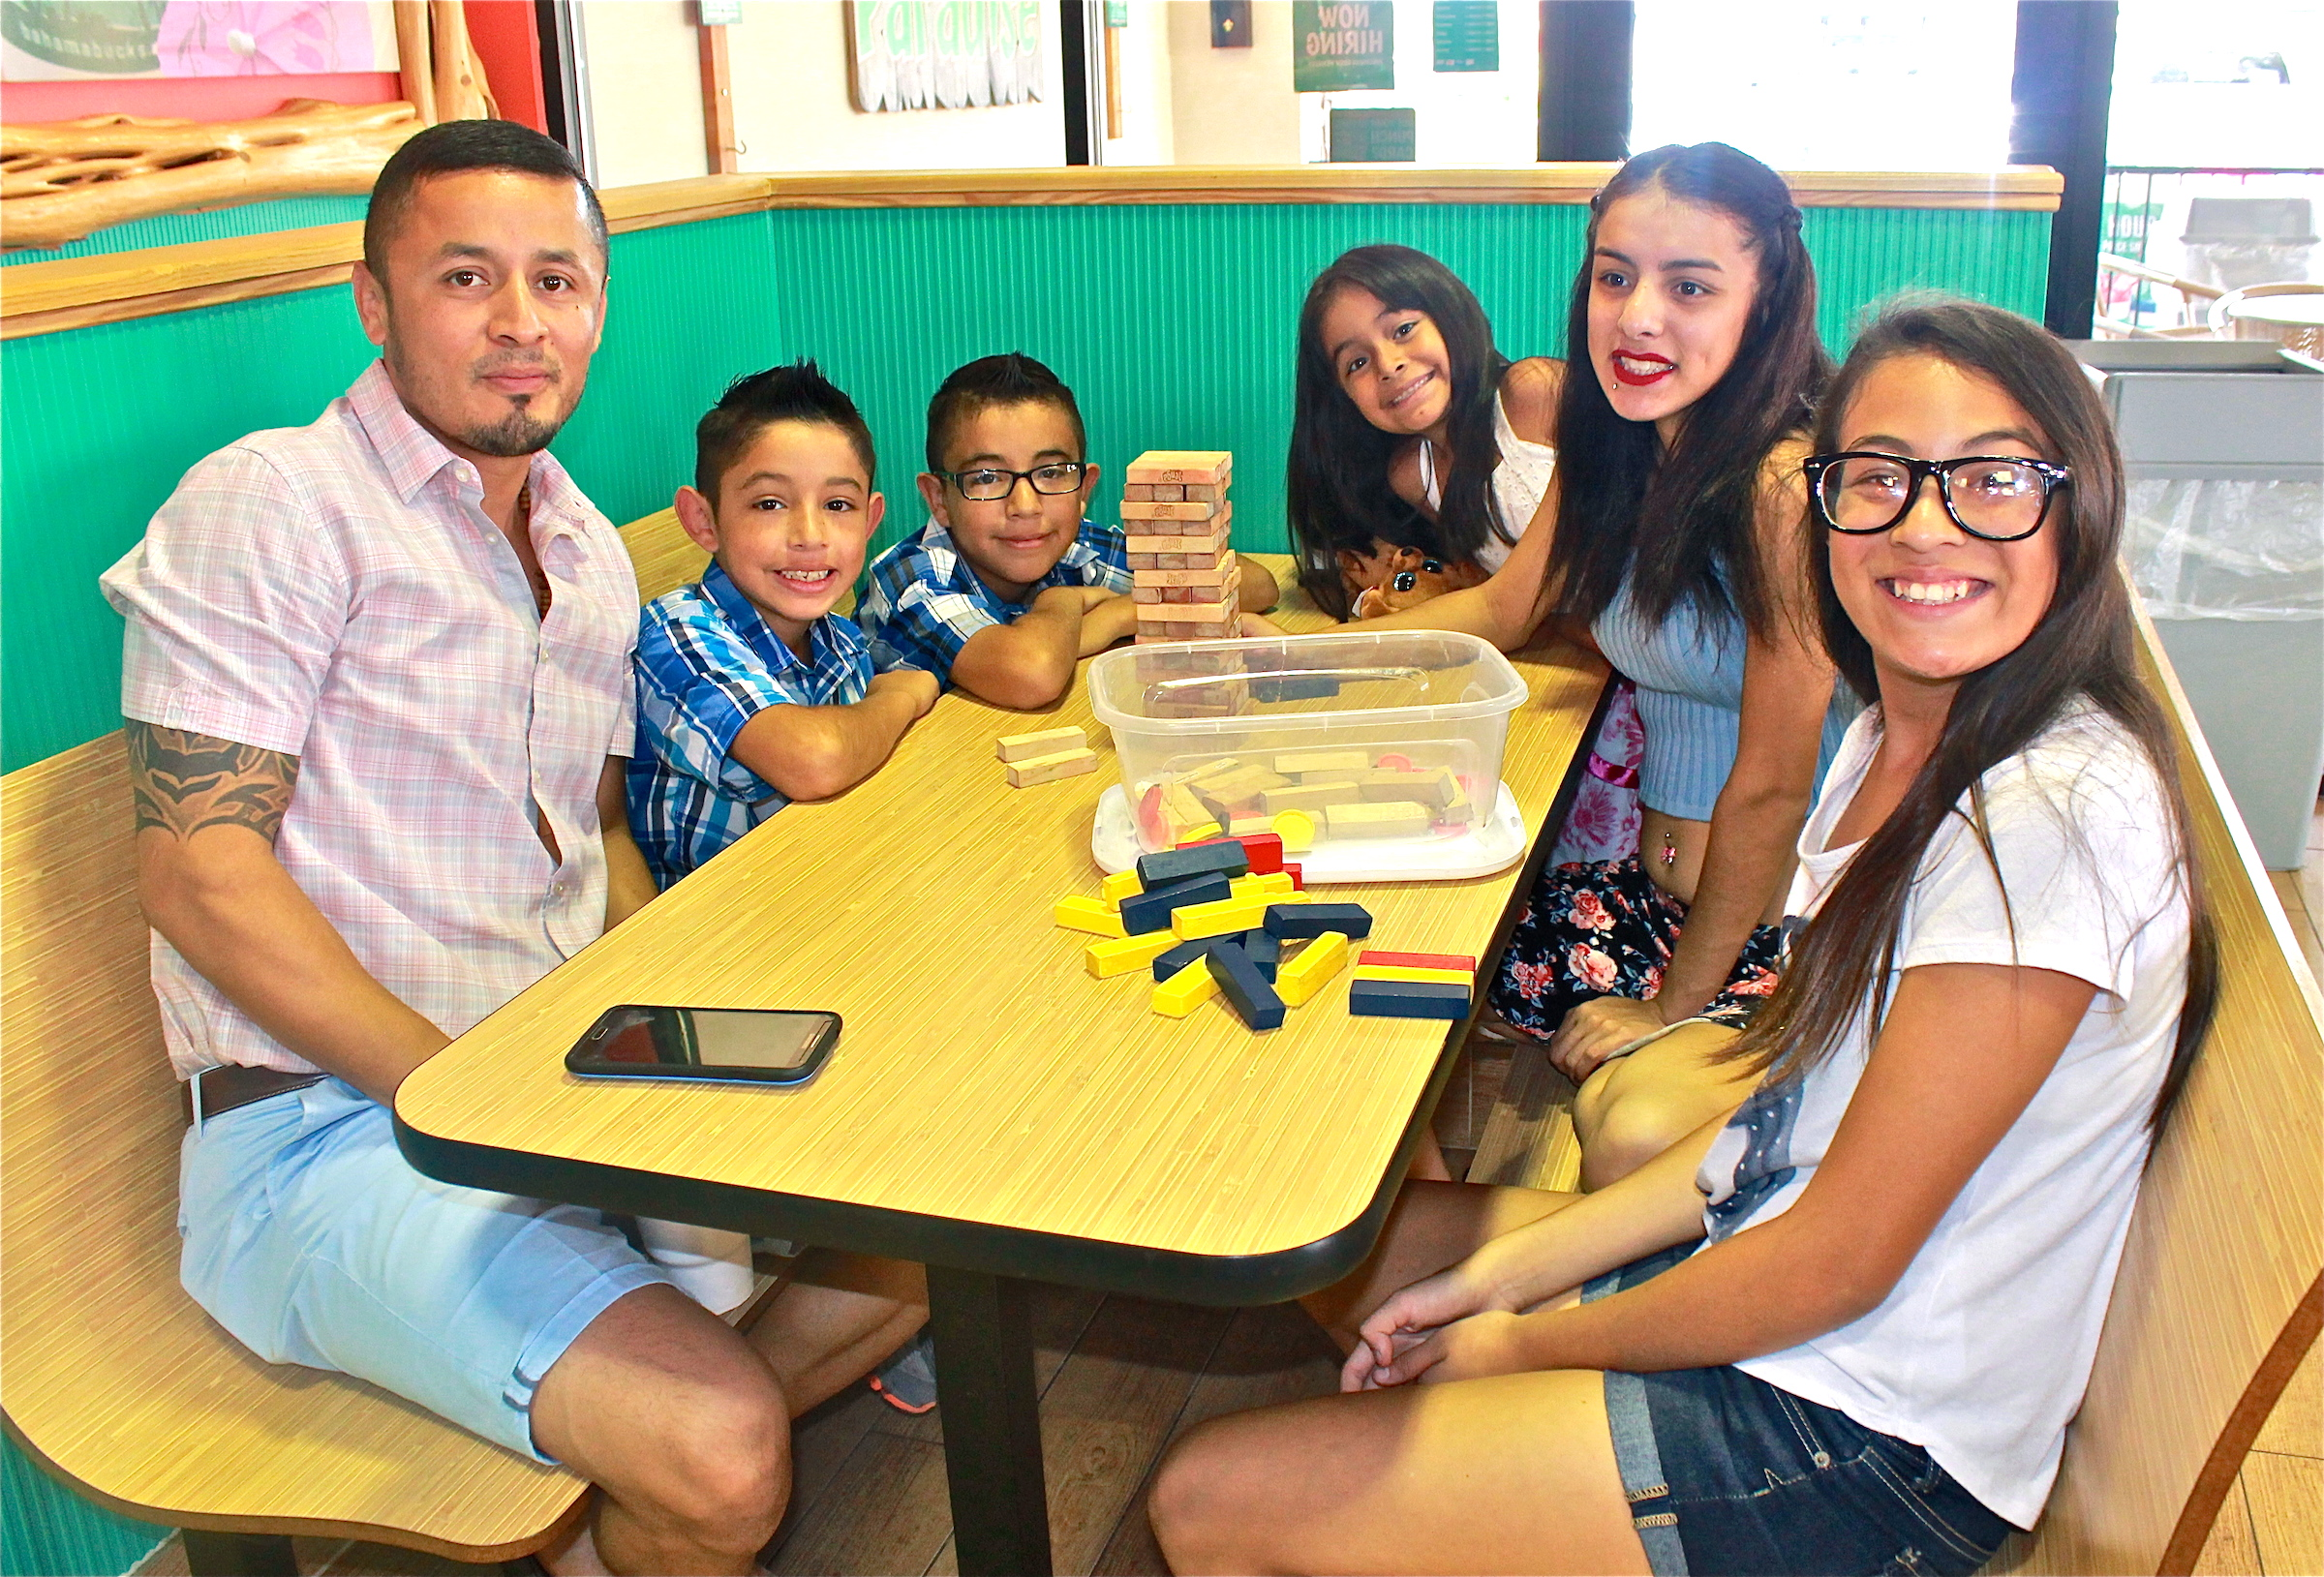 Chilling Out At Bahama Bucks Valley Business Report